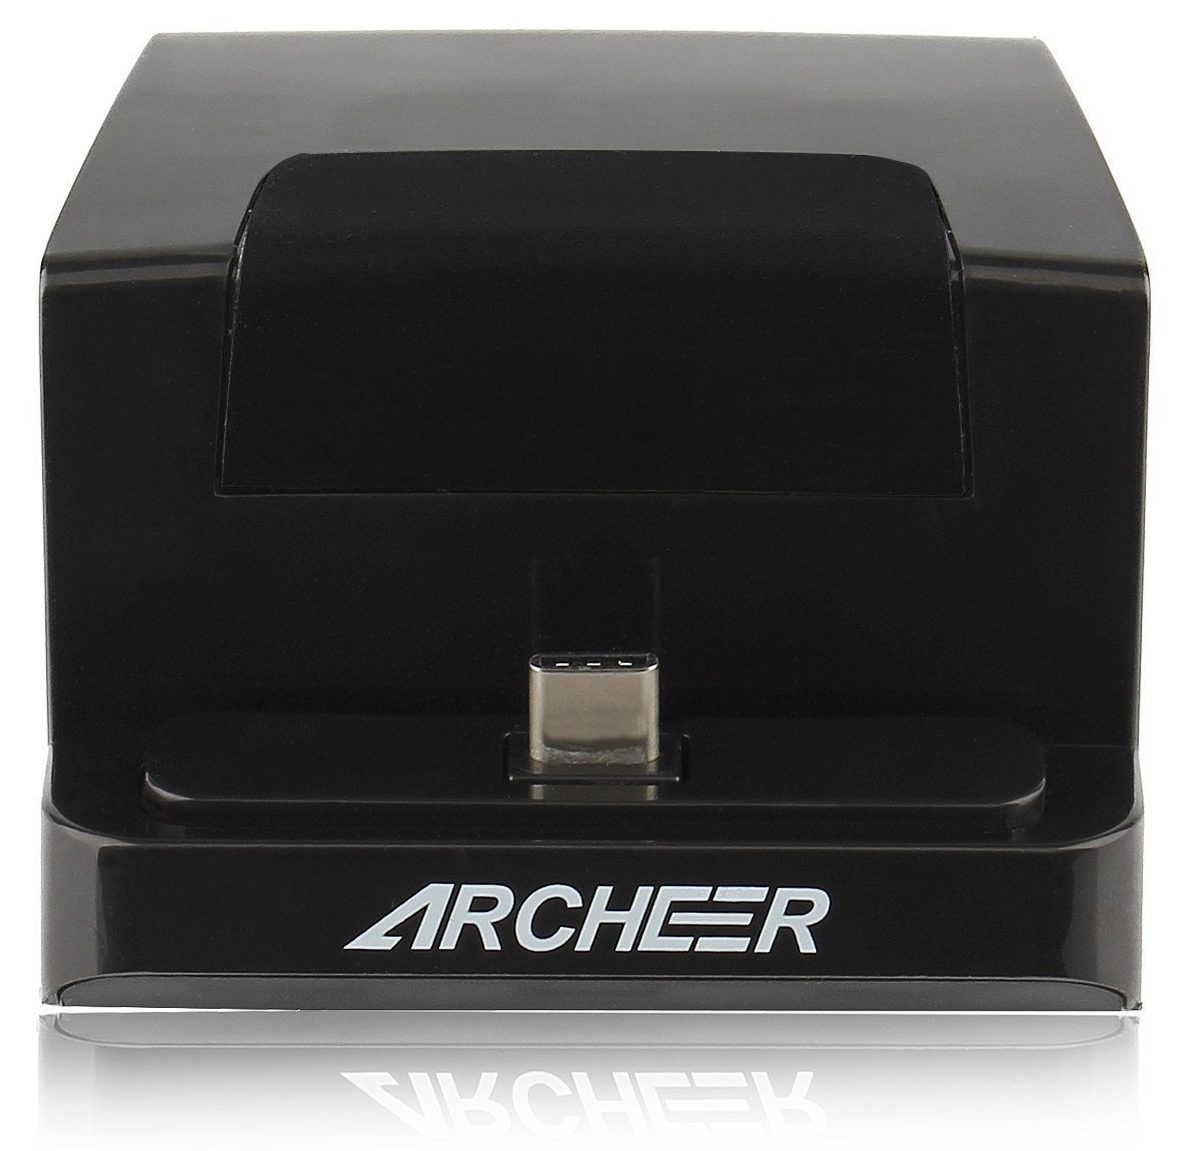 archeer type c dock